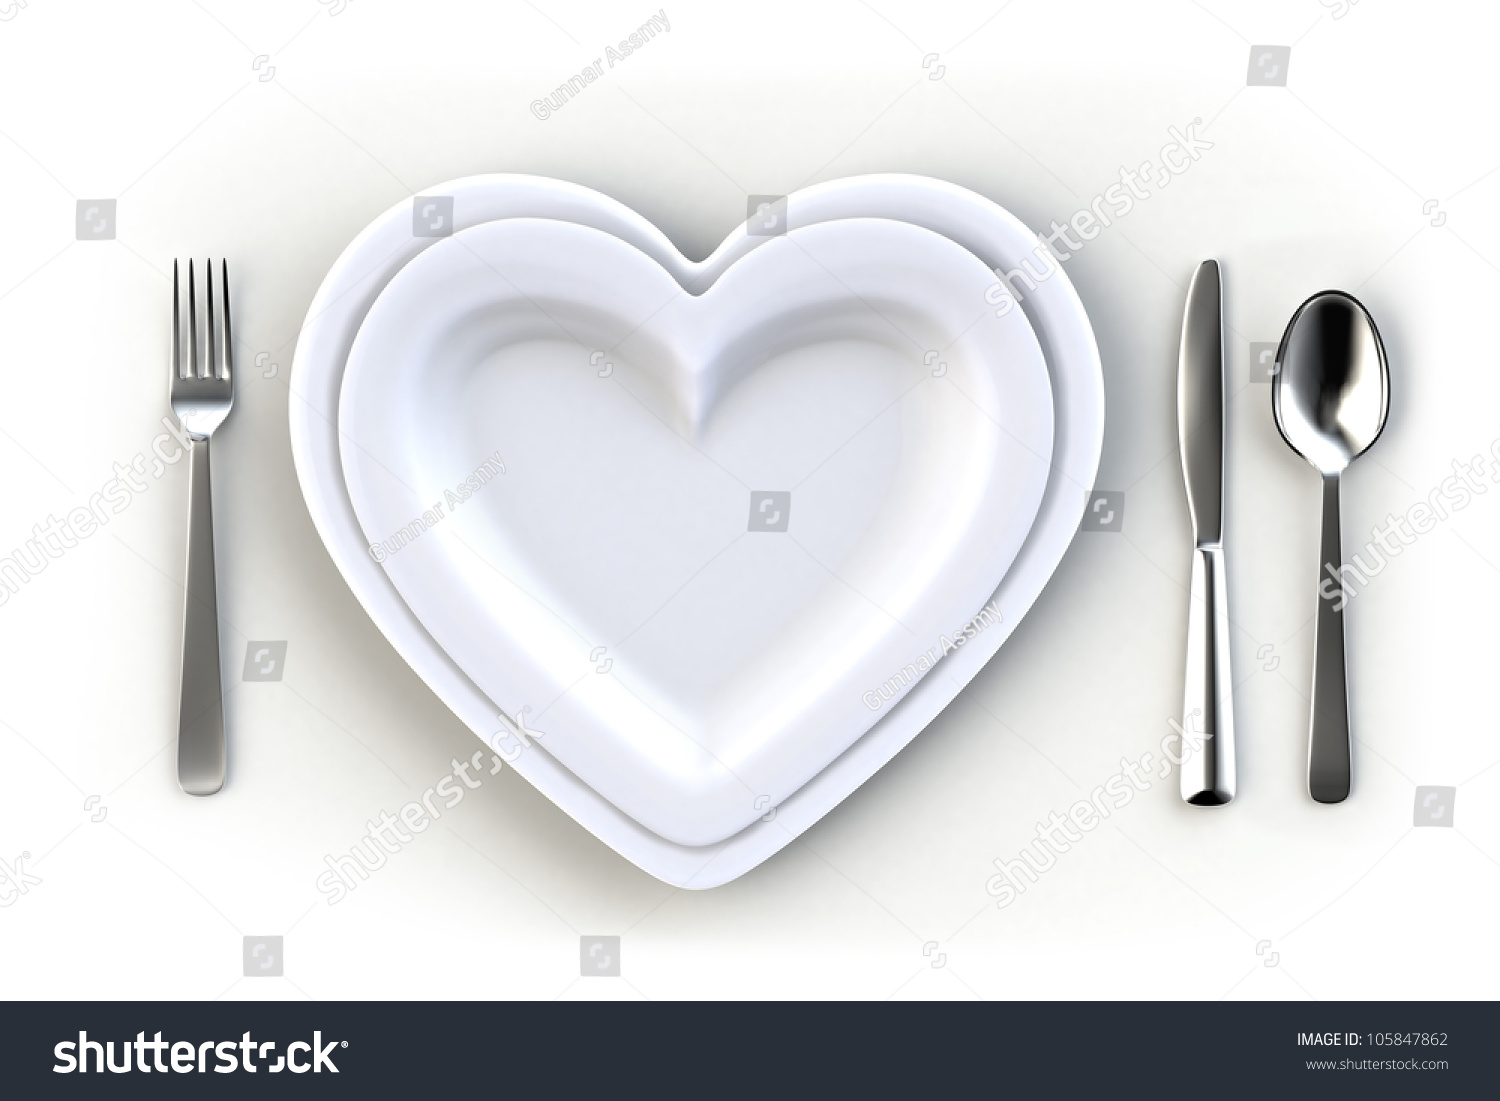 Heart Shaped Dish On White Table